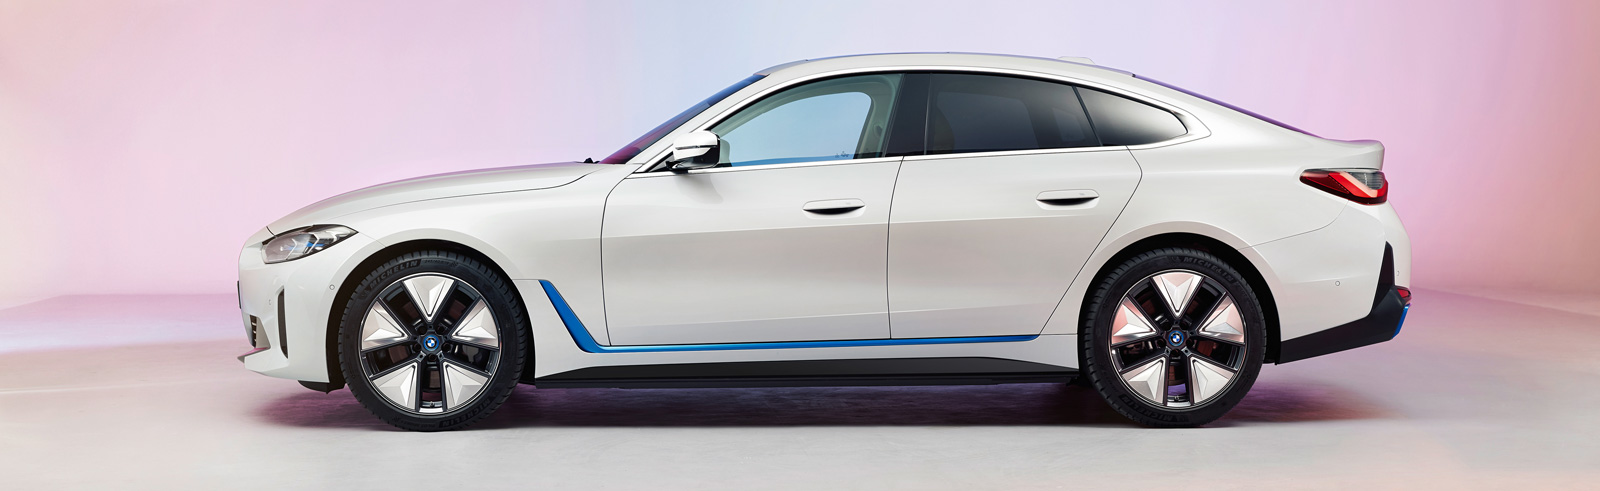 The BMW i4 is teased at the BMW Group Annual Conference